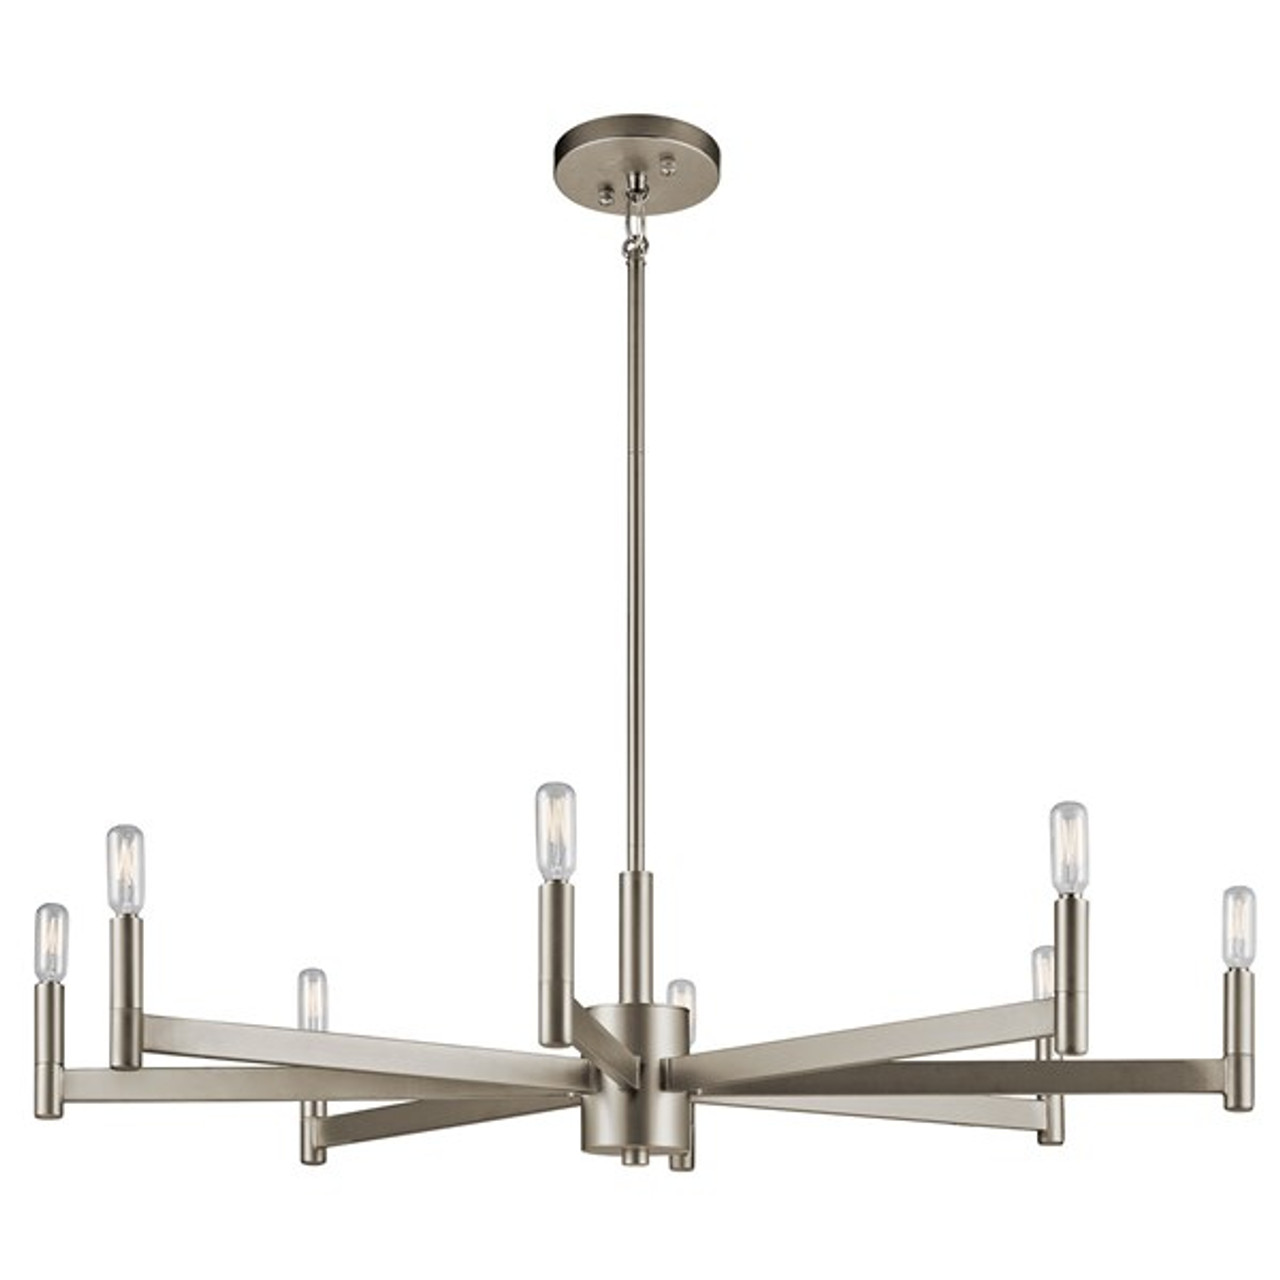 "Ezro 35.5"" Eight Light Chandelier by Kichler, Satin Nickel finish, 120V, 480W, Dimmable, ETL Listed Dry (43857SN)"